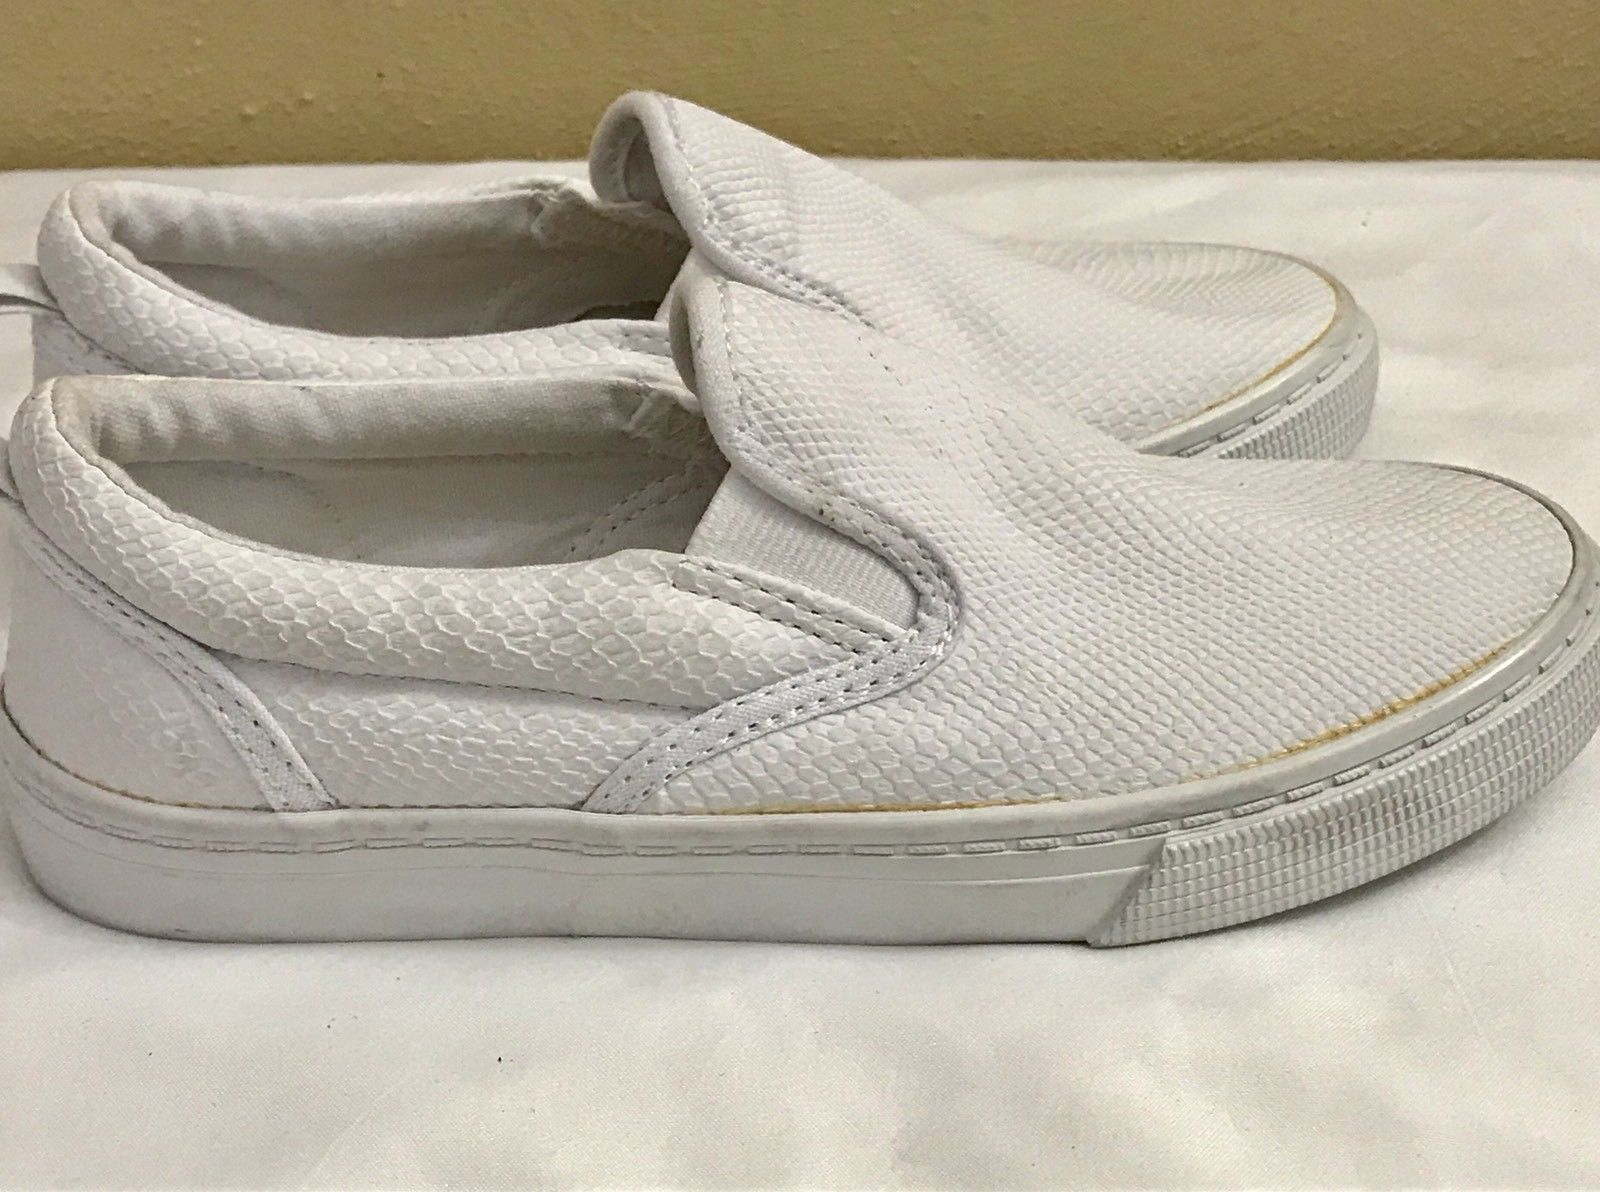 New GAP Snake Pattern Slip-On White Casual Shoes Youth Size 1 M